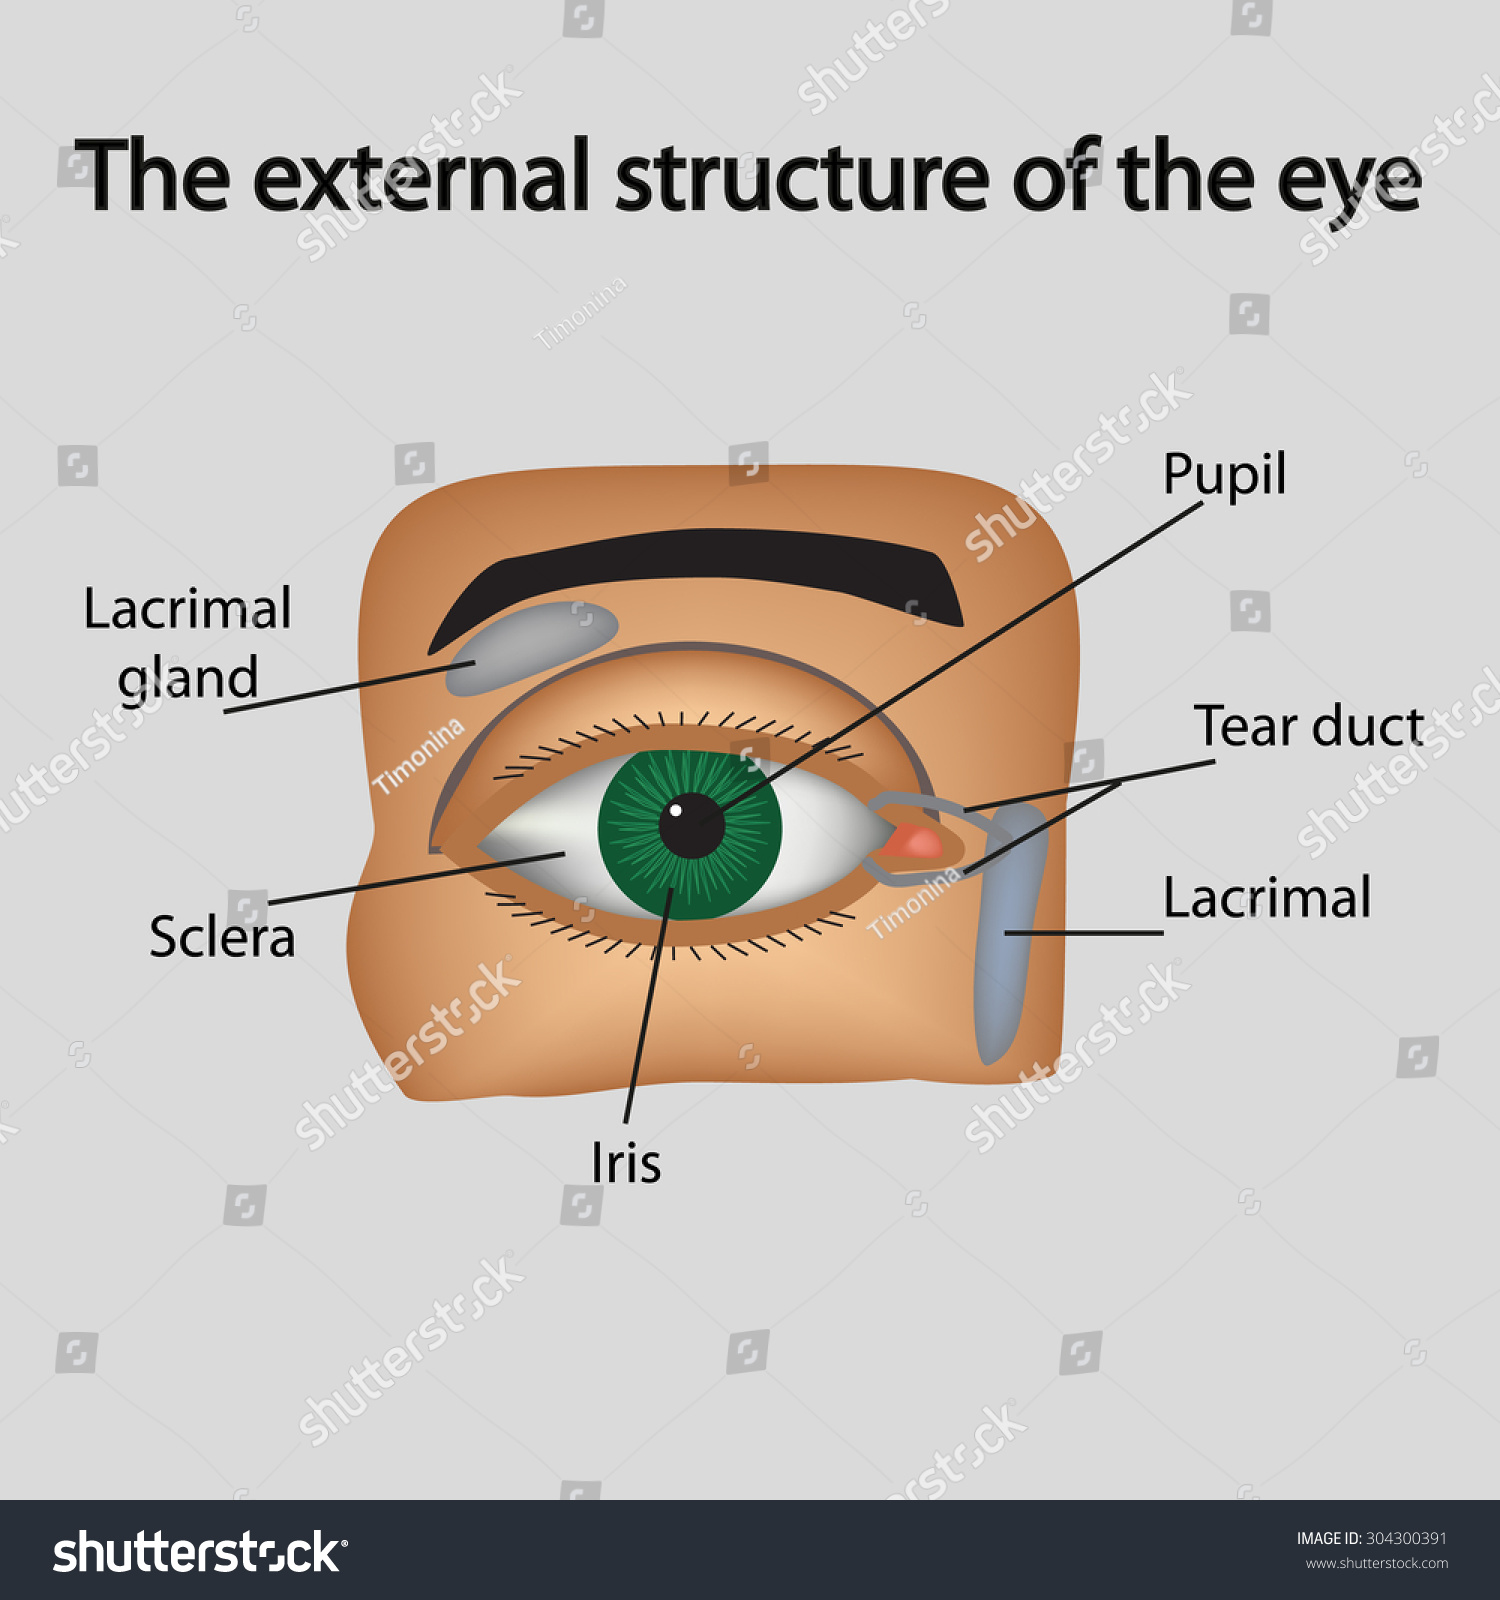 Royalty Free Stock Illustration of External Structure Eye Stock ...